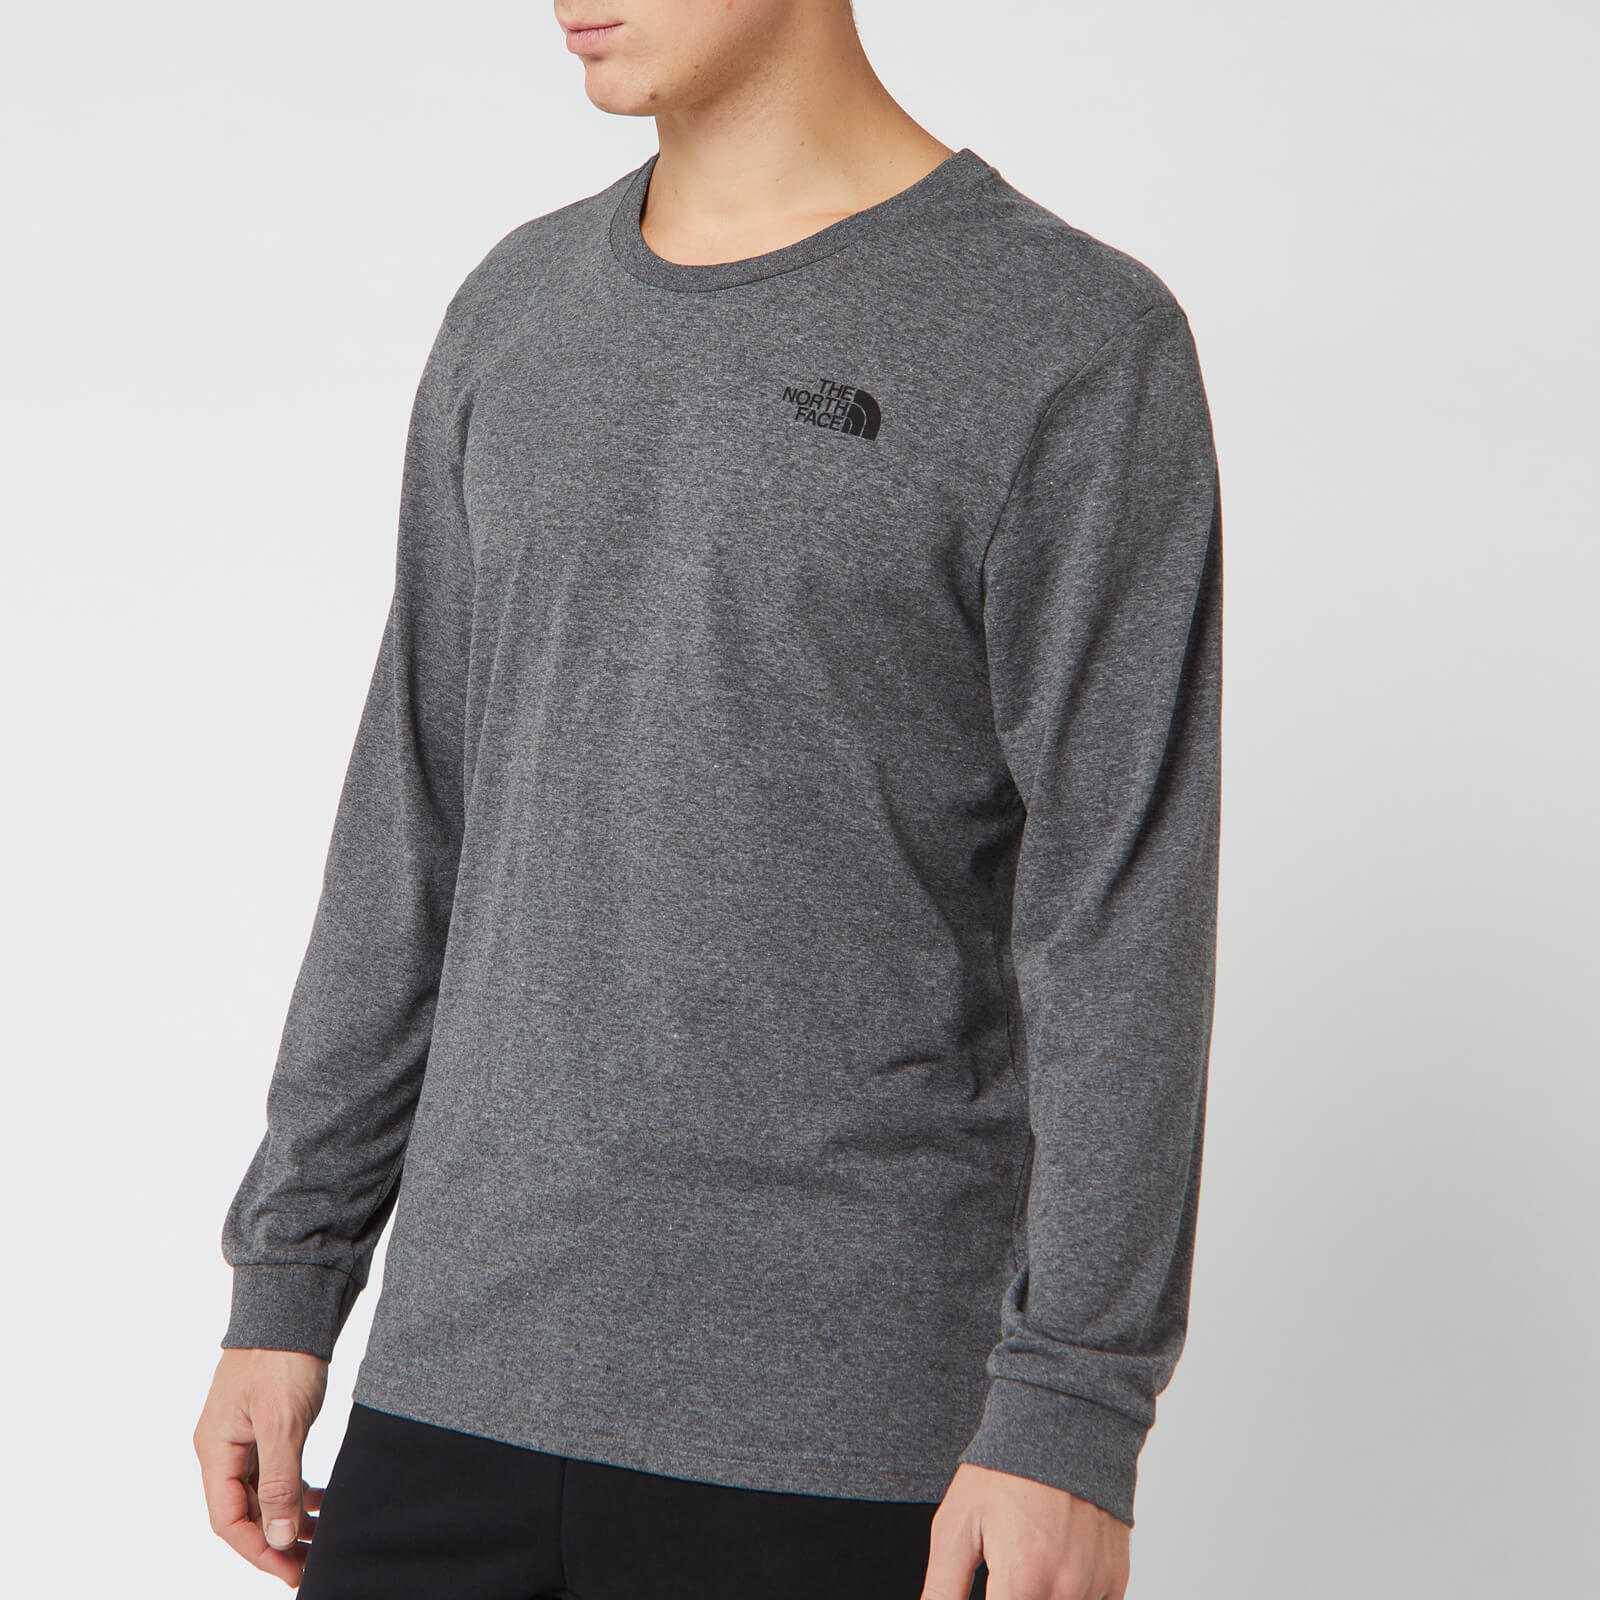 e6a7ab4bb The North Face Men's Long Sleeve Simple Dome T-Shirt - TNF Medium Grey  Heather